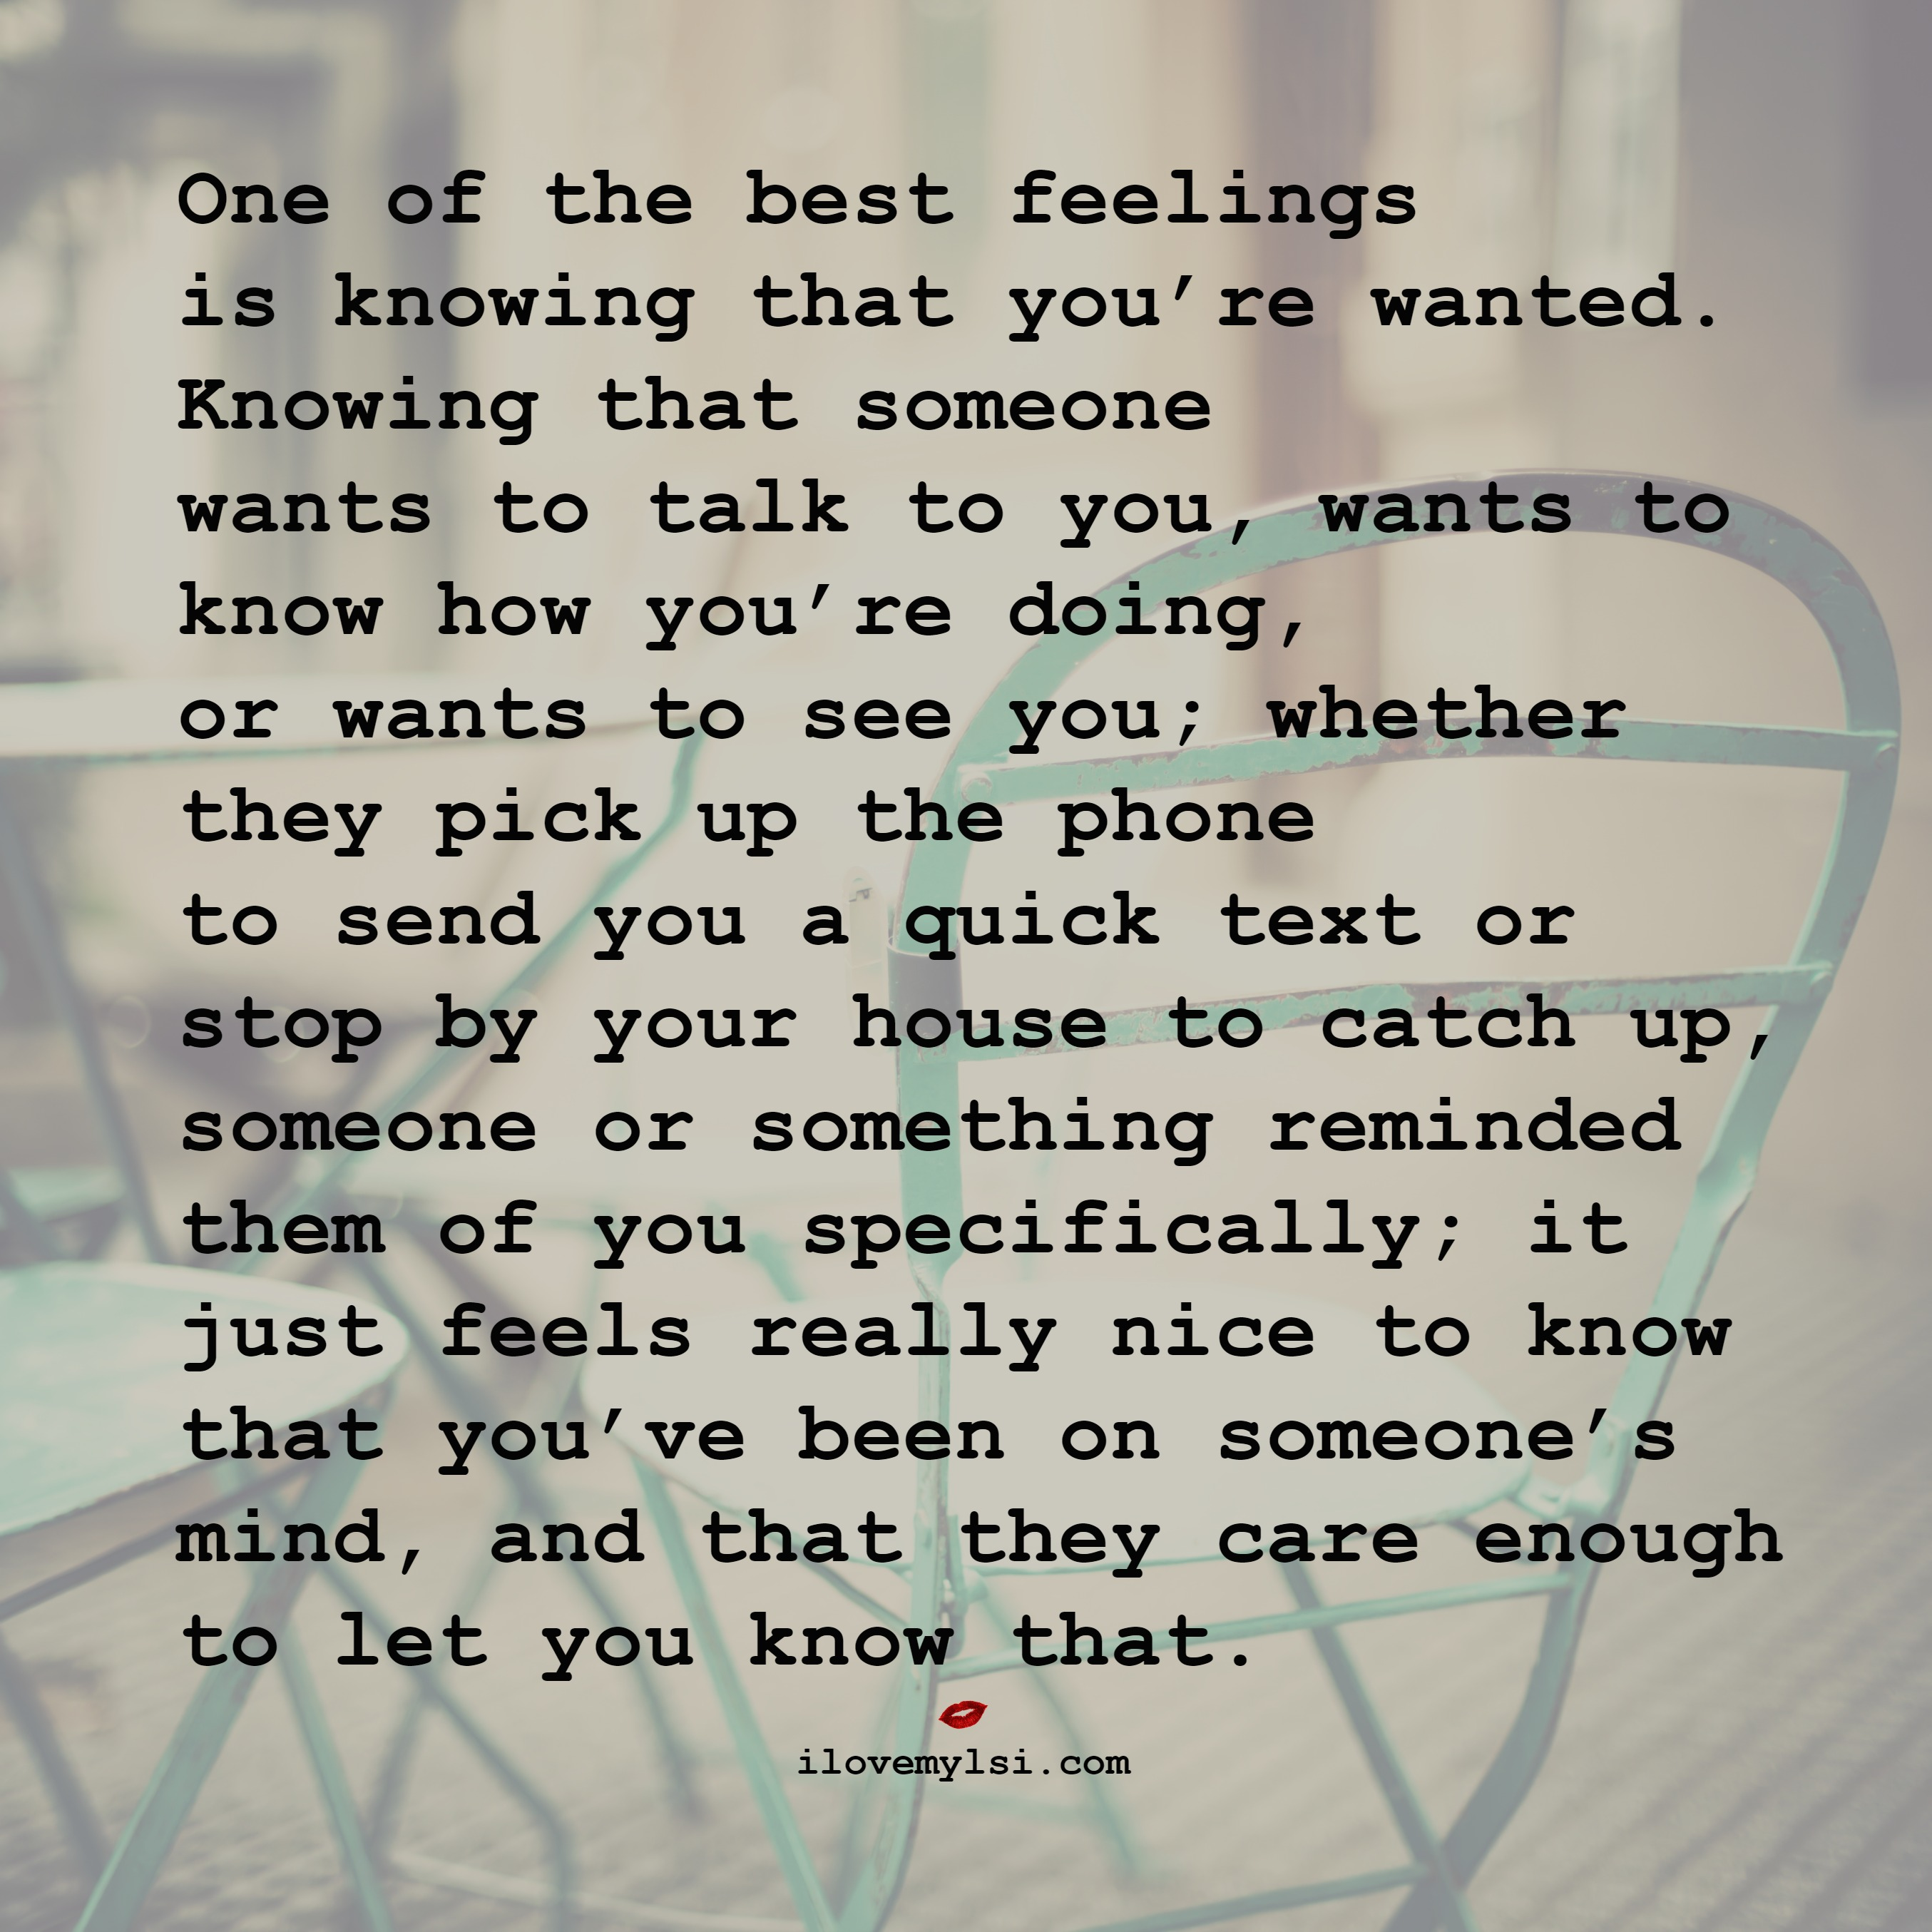 Quotes About Not Really Knowing Someone: One Of The Best Feelings Is Knowing That You're Wanted